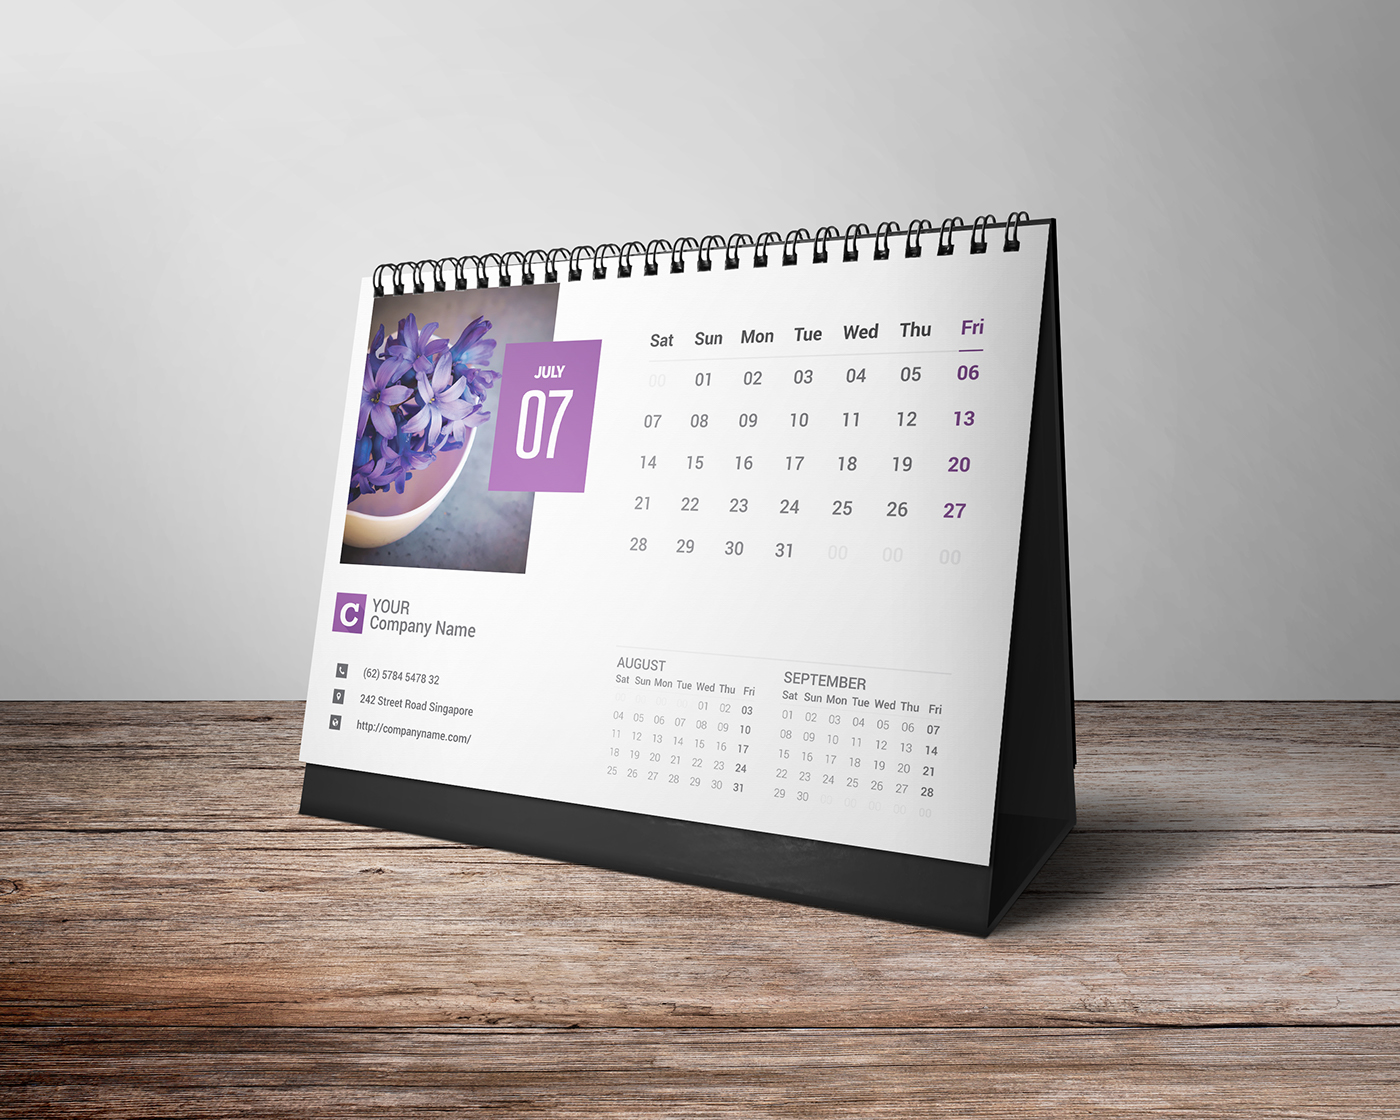 Us Calendar For Year 2017 Calendar For January 2018 United States Time And Date Creative Calendar Designs For 2018 Easyprint Blog